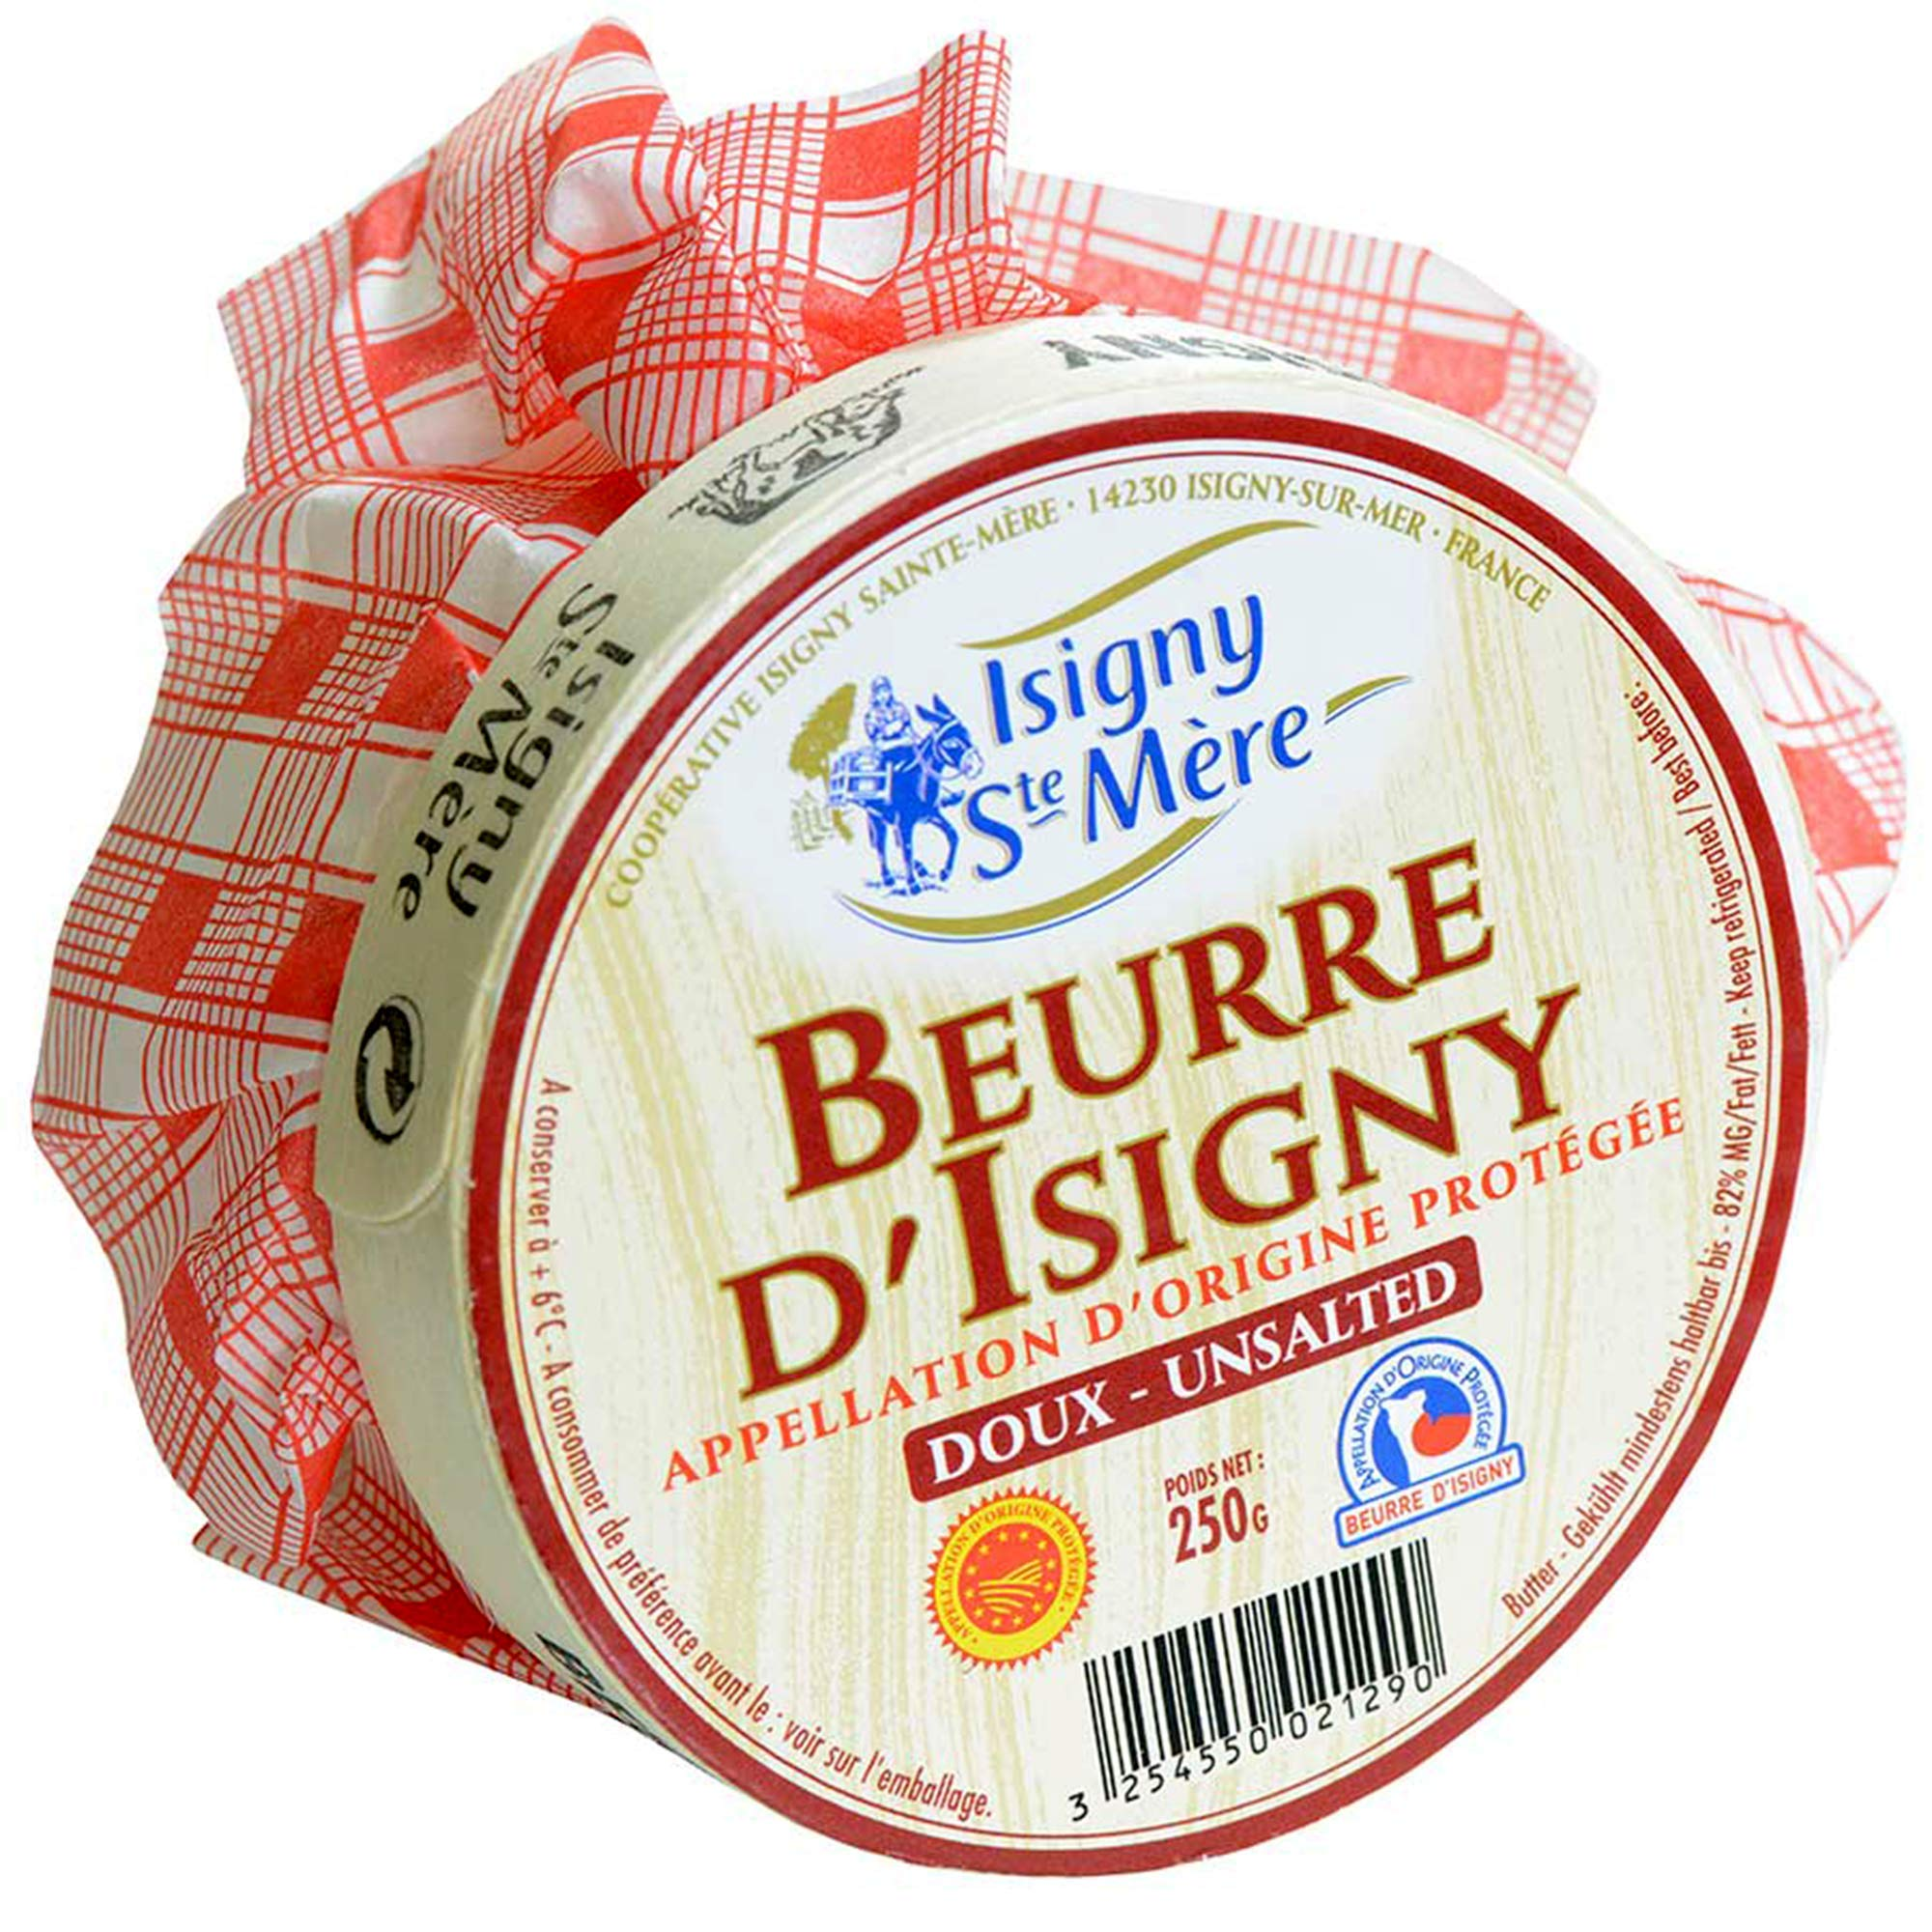 French Normandy Butter, Unsalted - 8.8 oz by Isigny (Image #1)